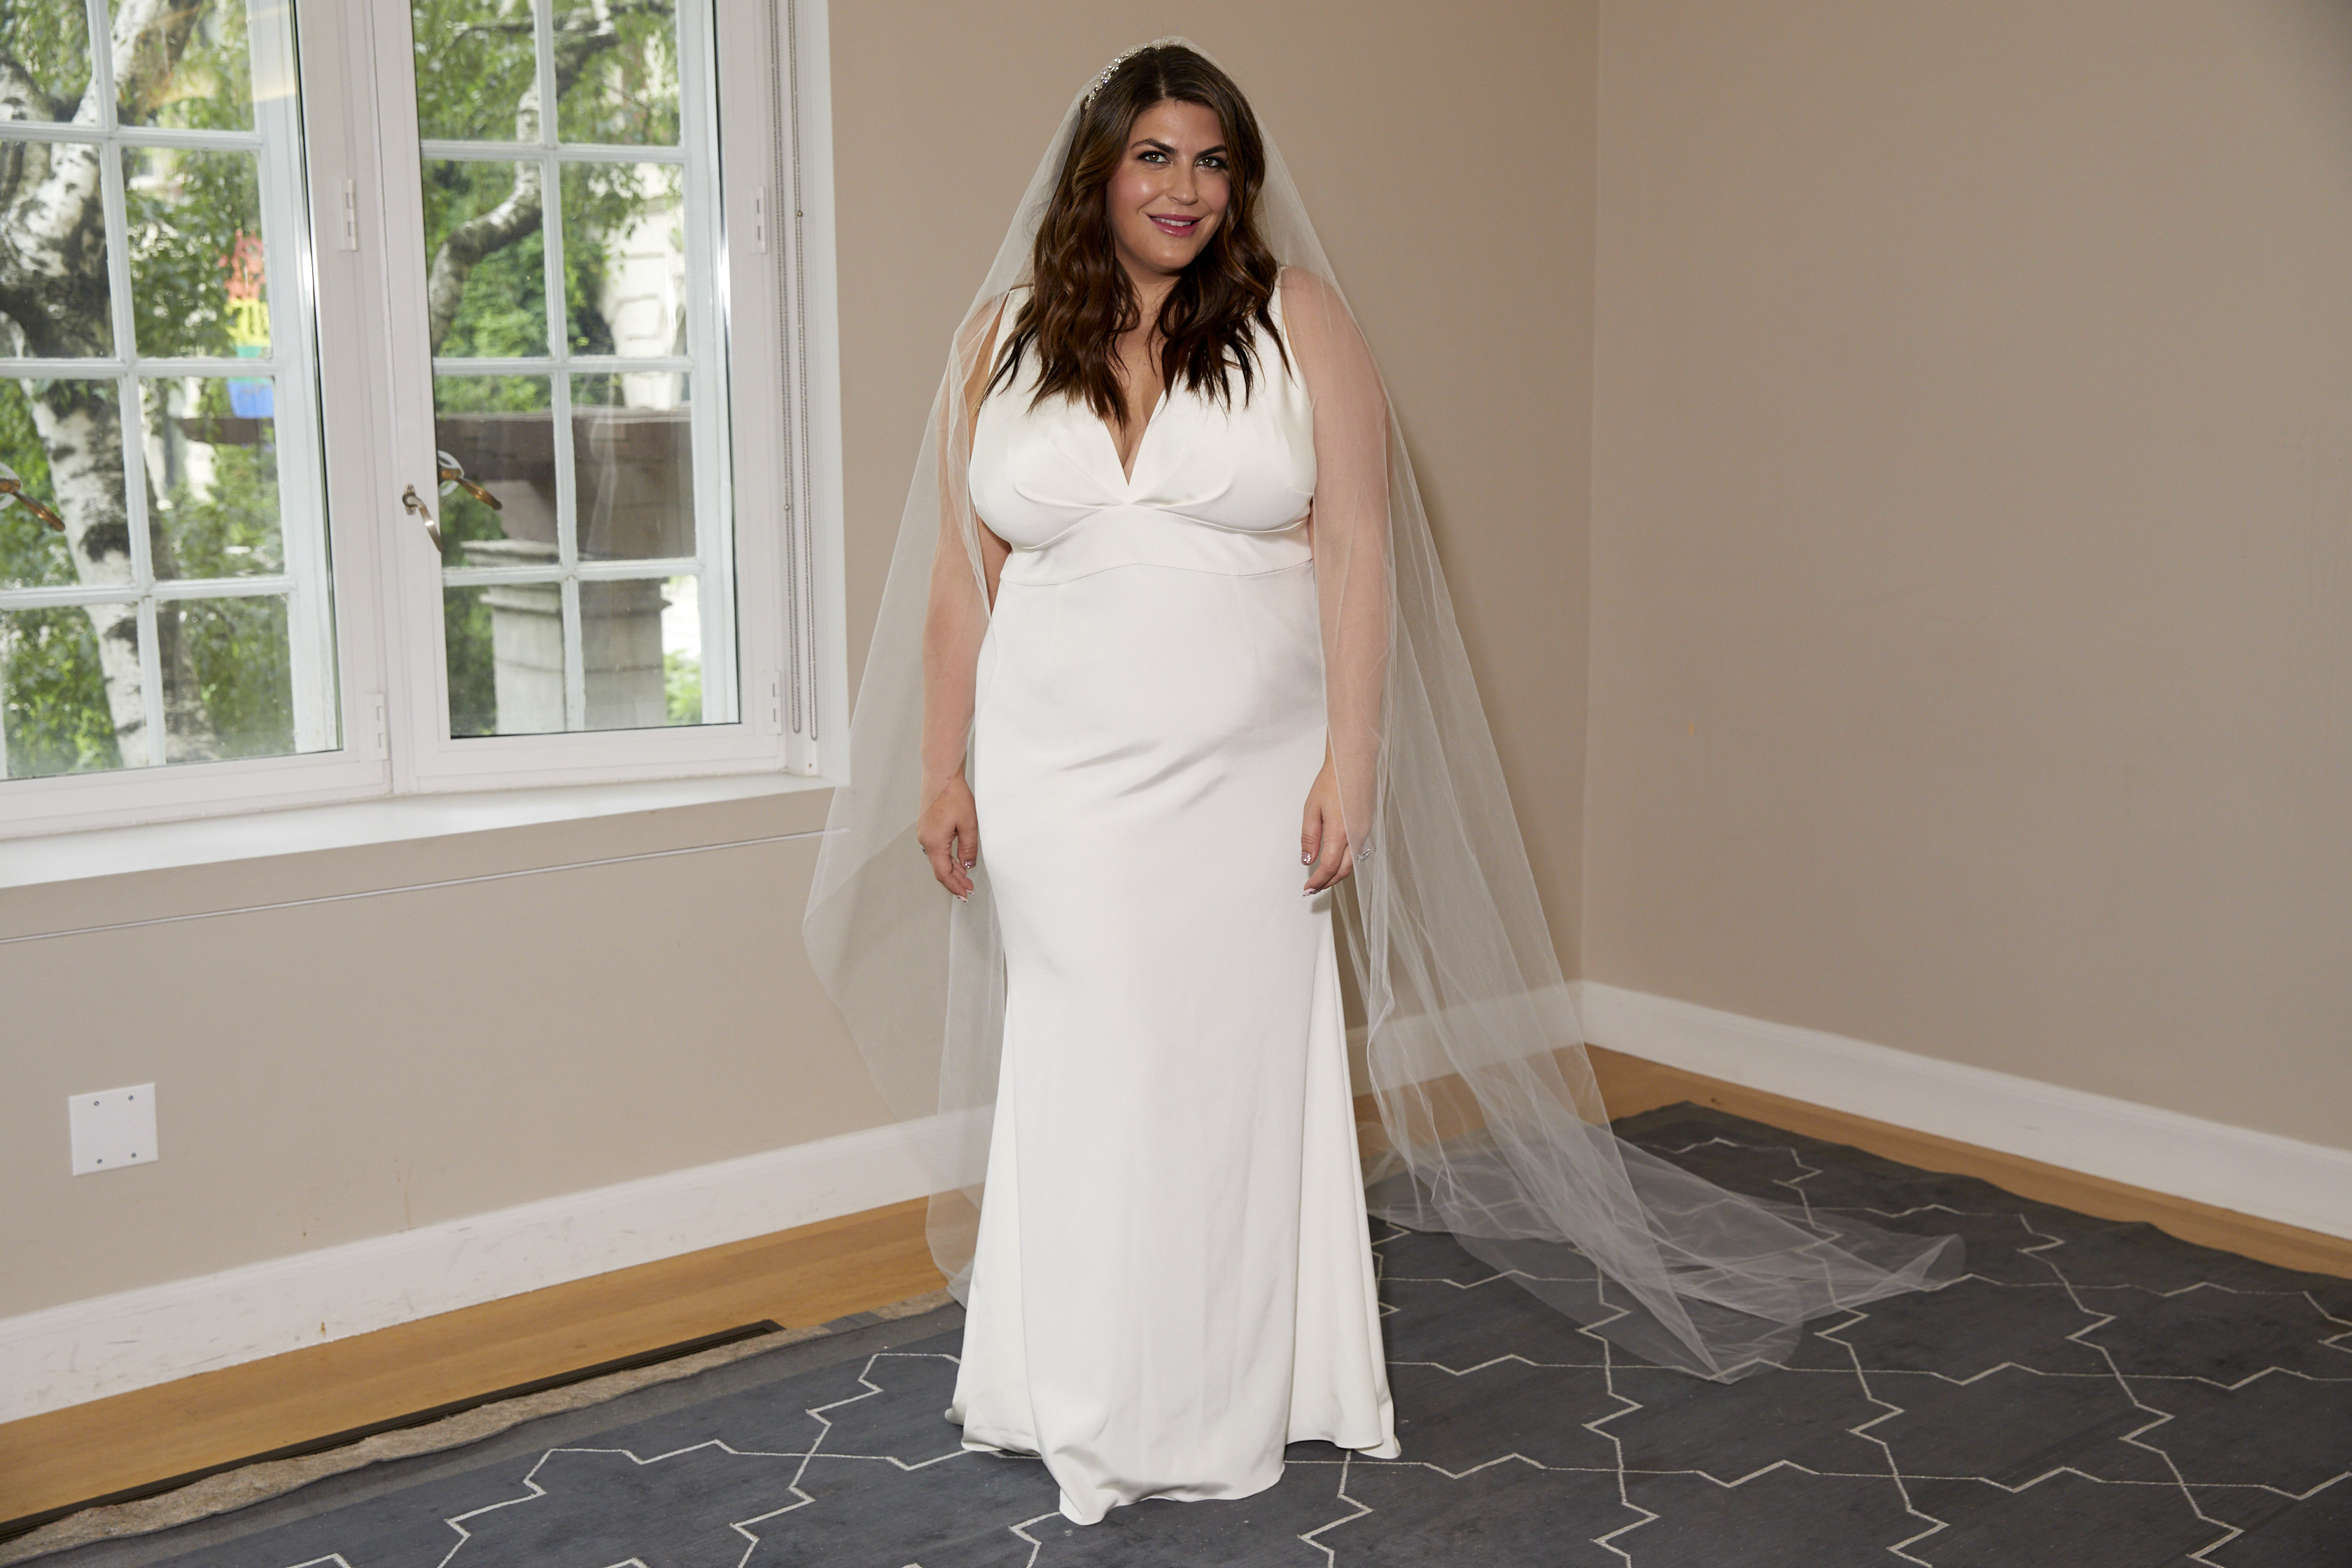 The 12ish Style's Katie Sturino's Guide to Designing a Custom Plus-Size Wedding Dress